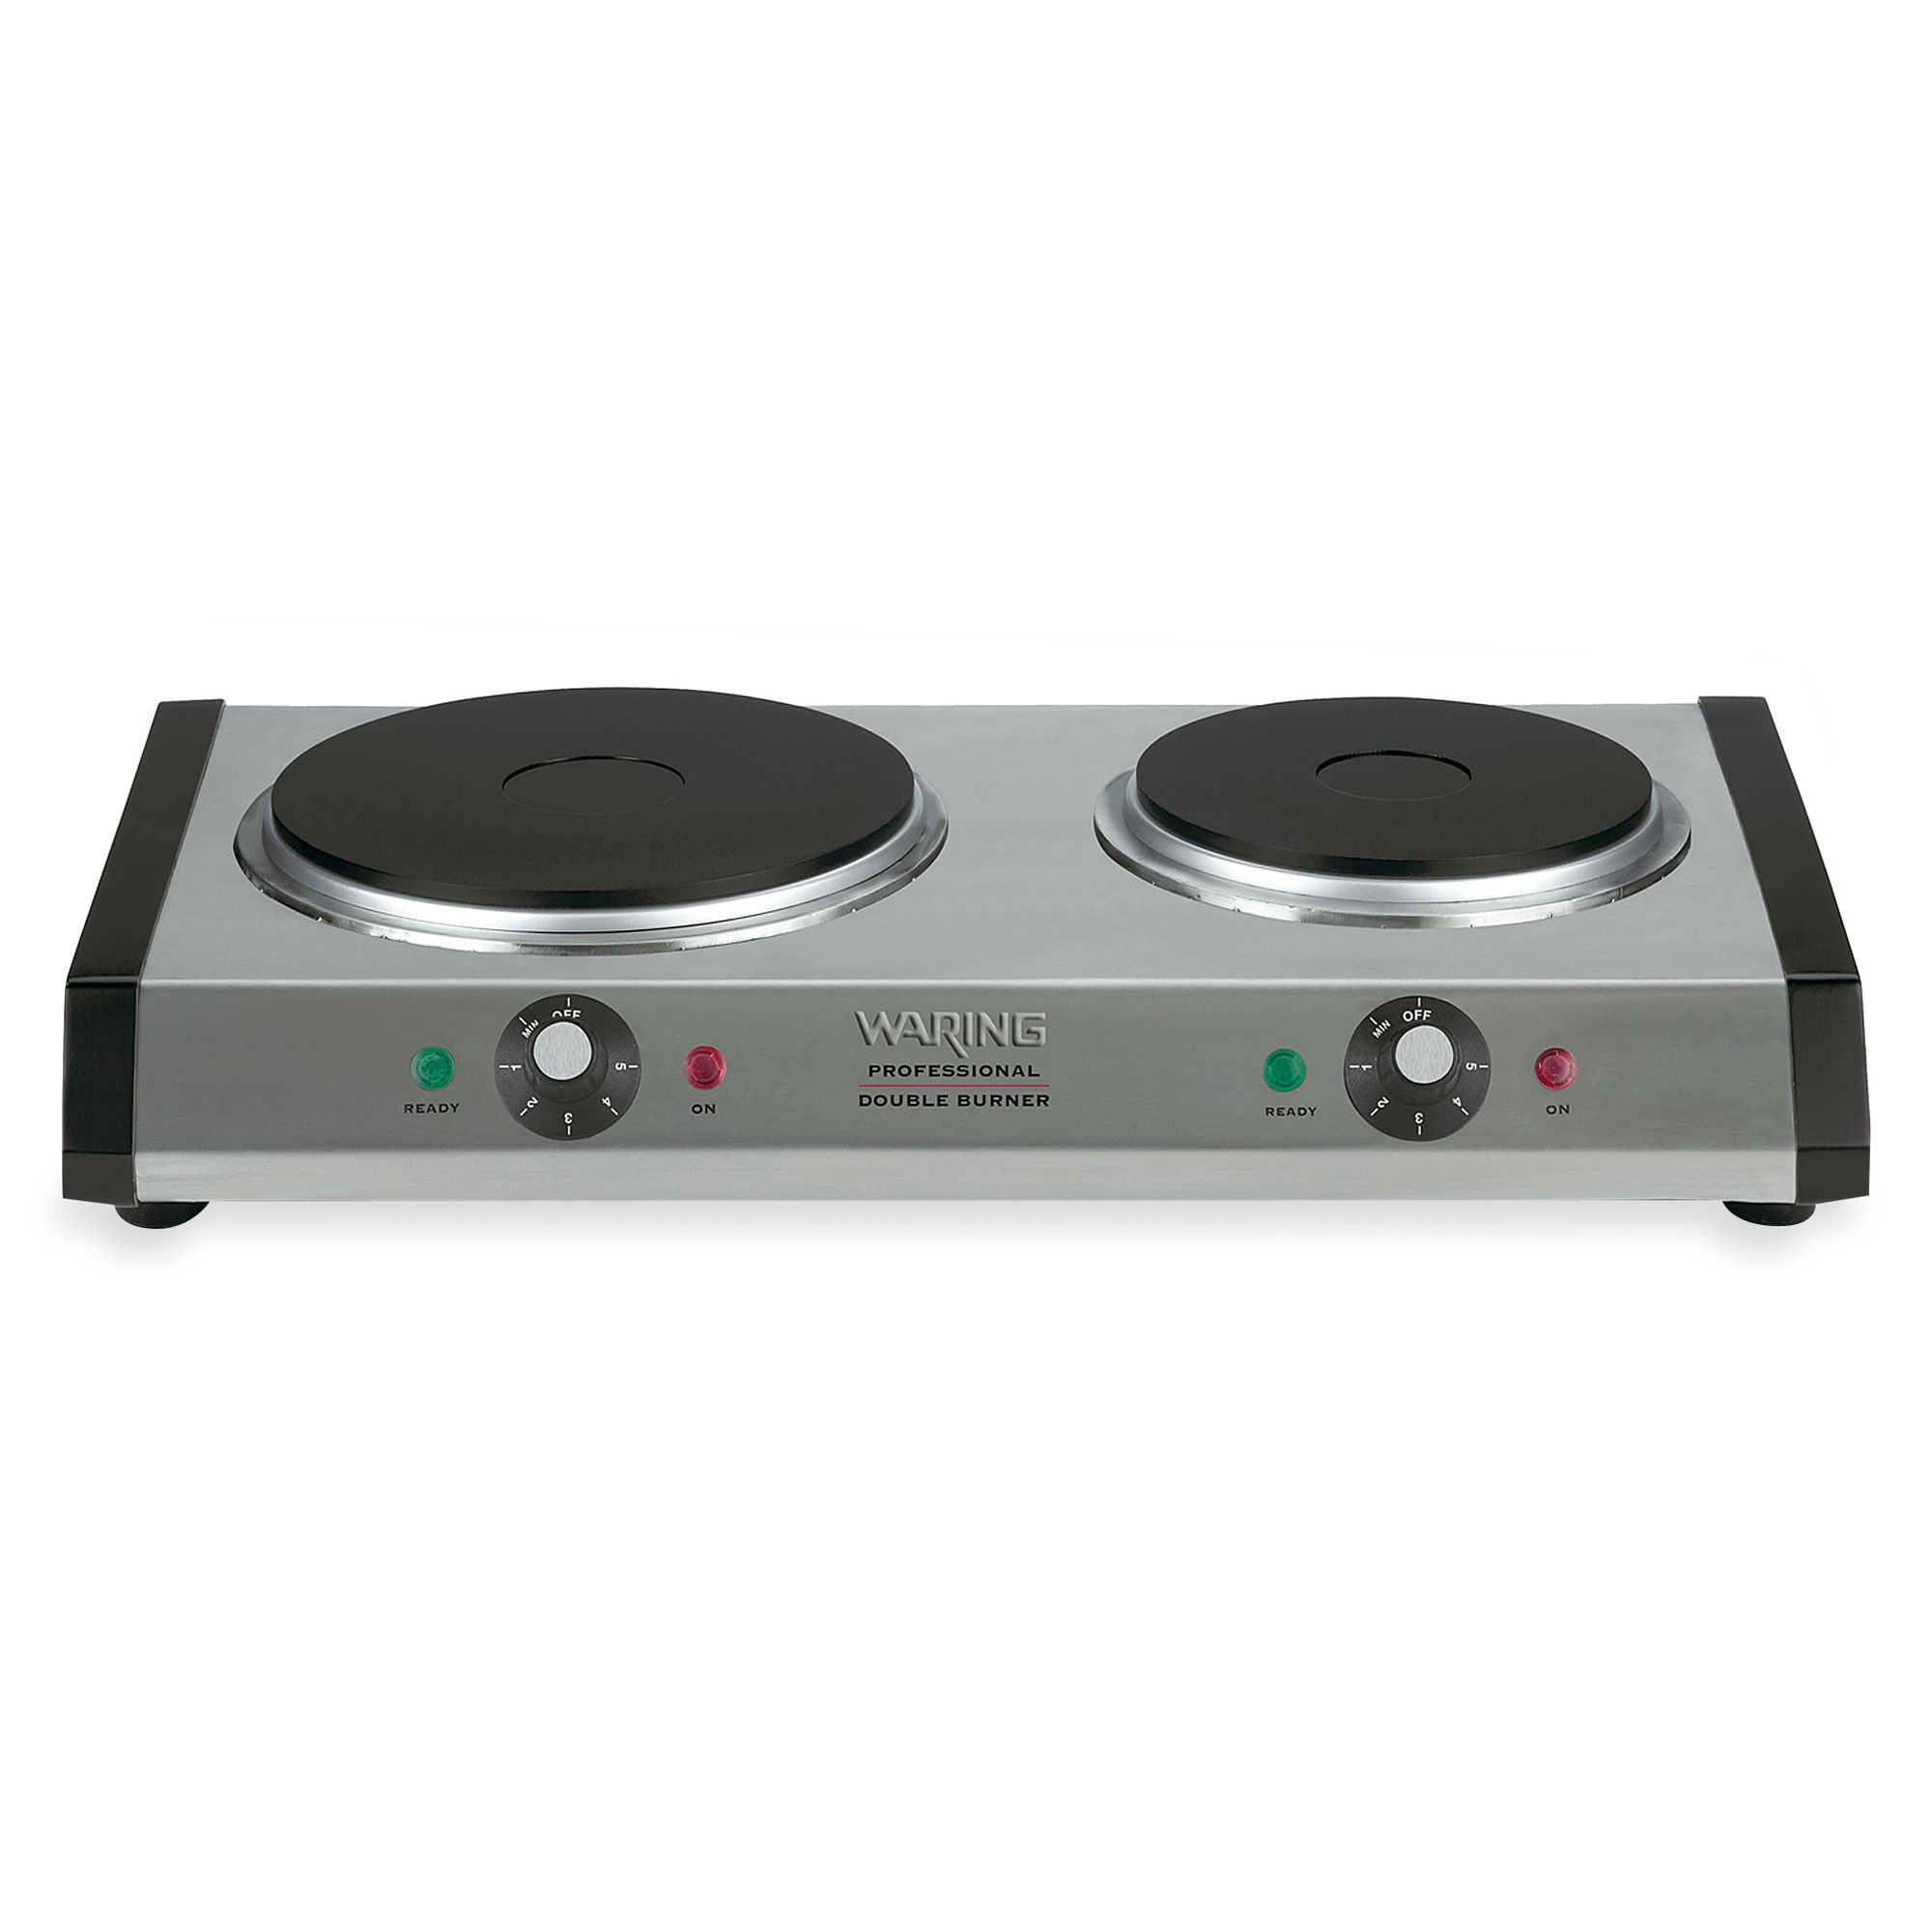 countertop quantum cooktop of induction portable review burner